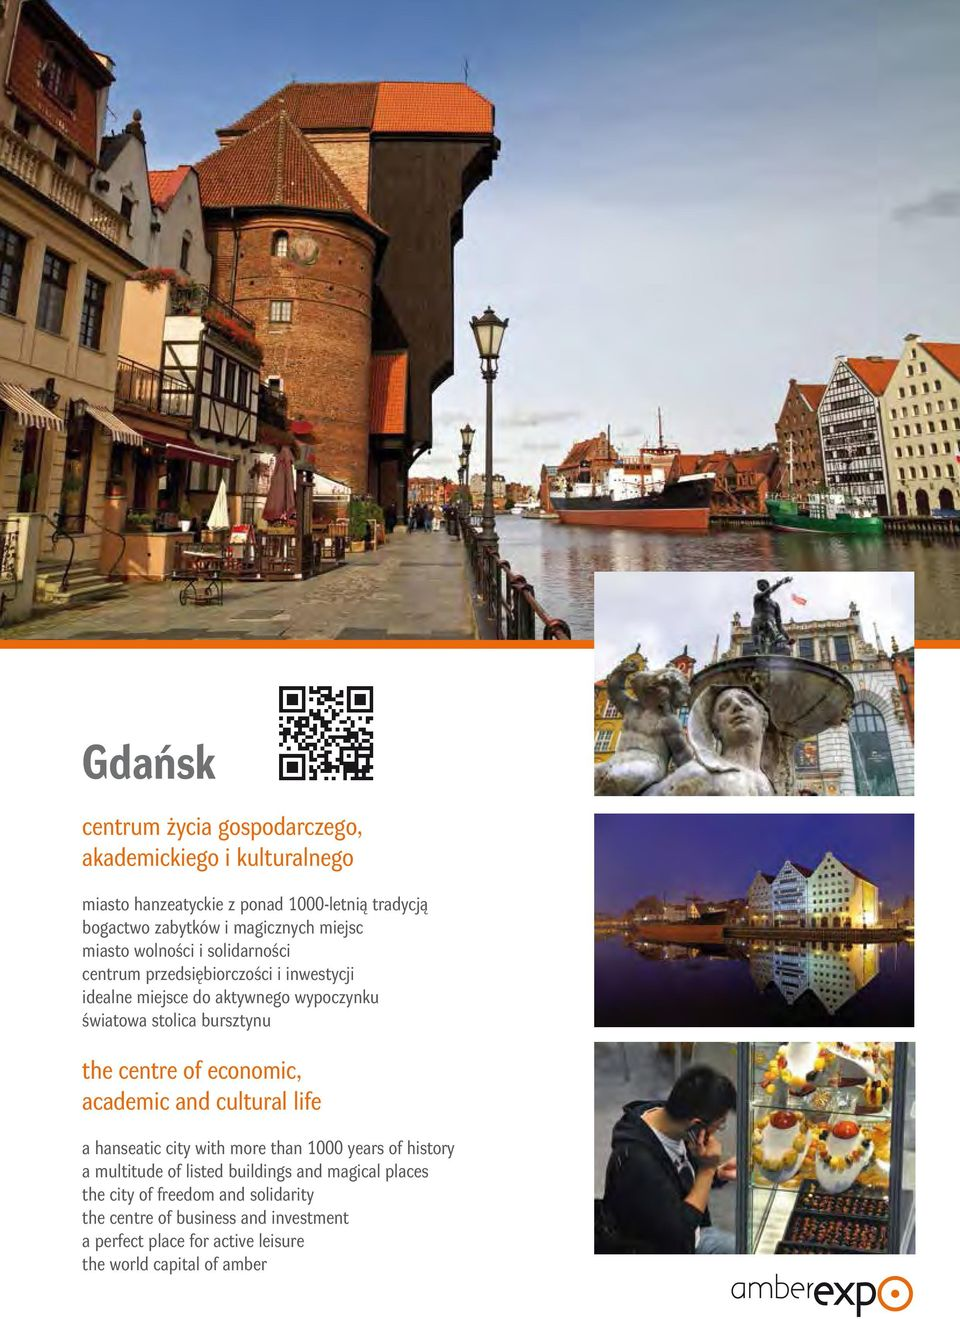 the centre of economic, academic and cultural life a hanseatic city with more than 1000 years of history a multitude of listed buildings and